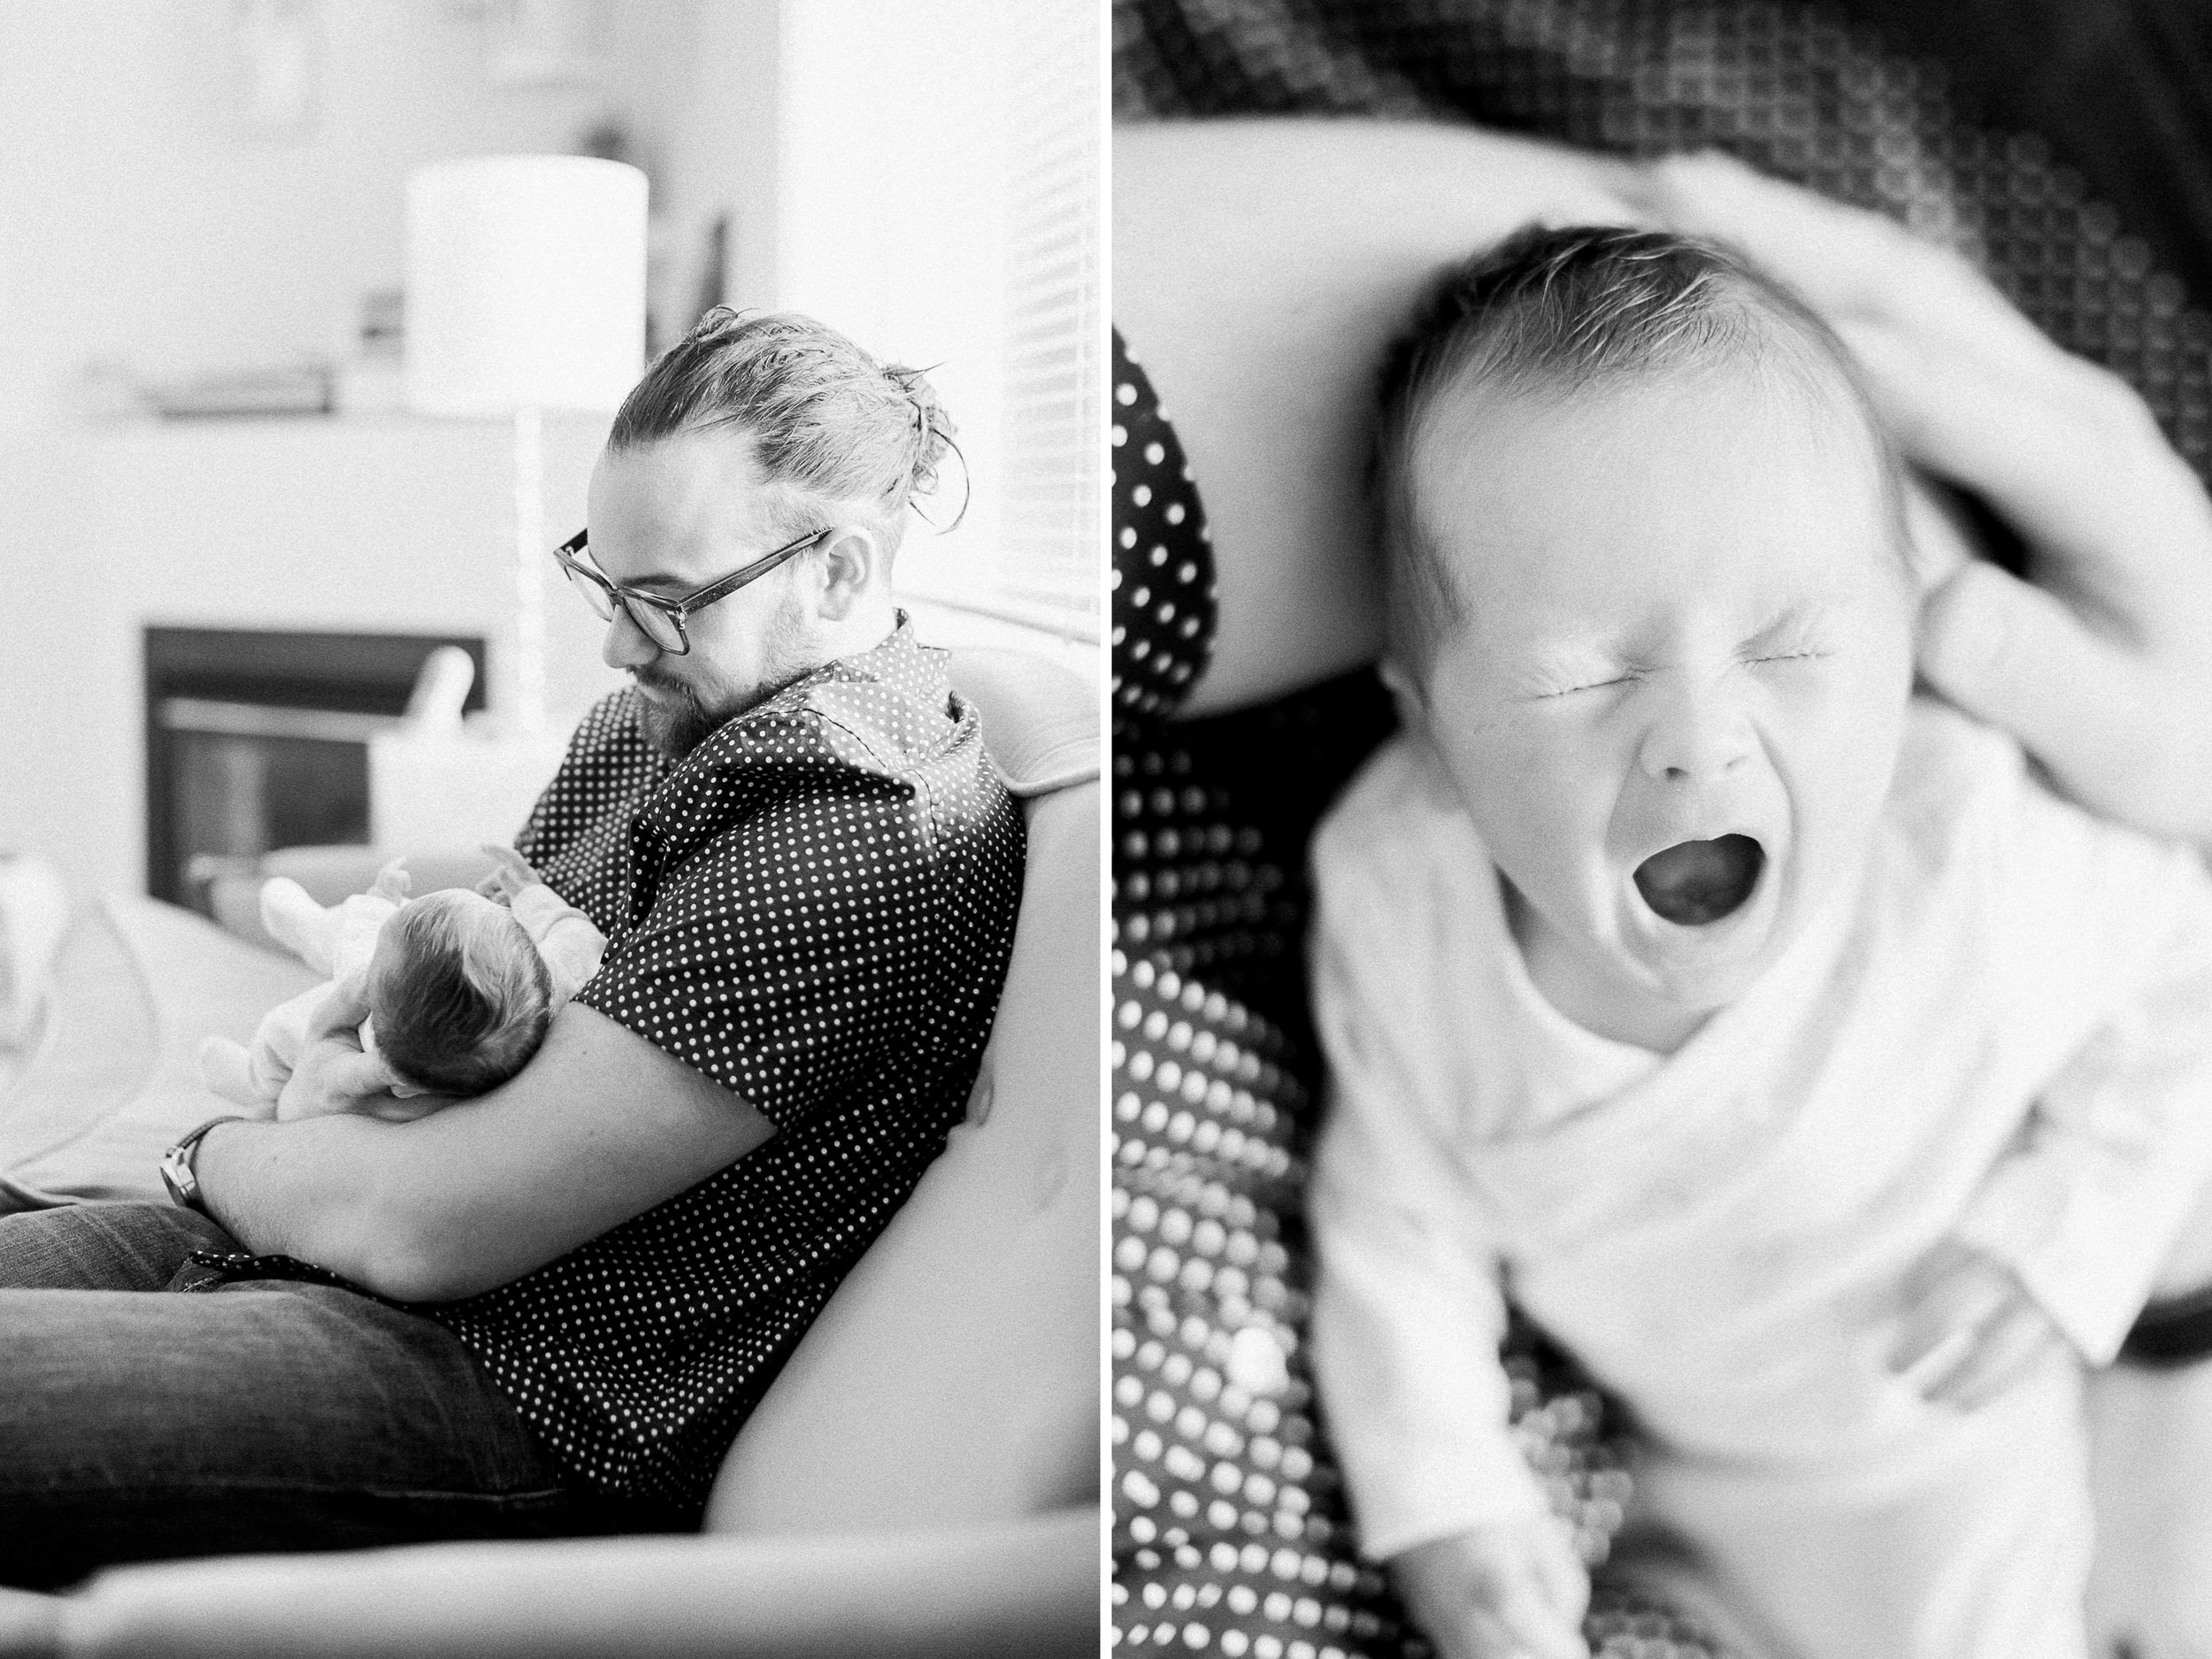 daddy-baby-girl-yawn-snuggle-home-session-calgary-newborn-photography.jpg